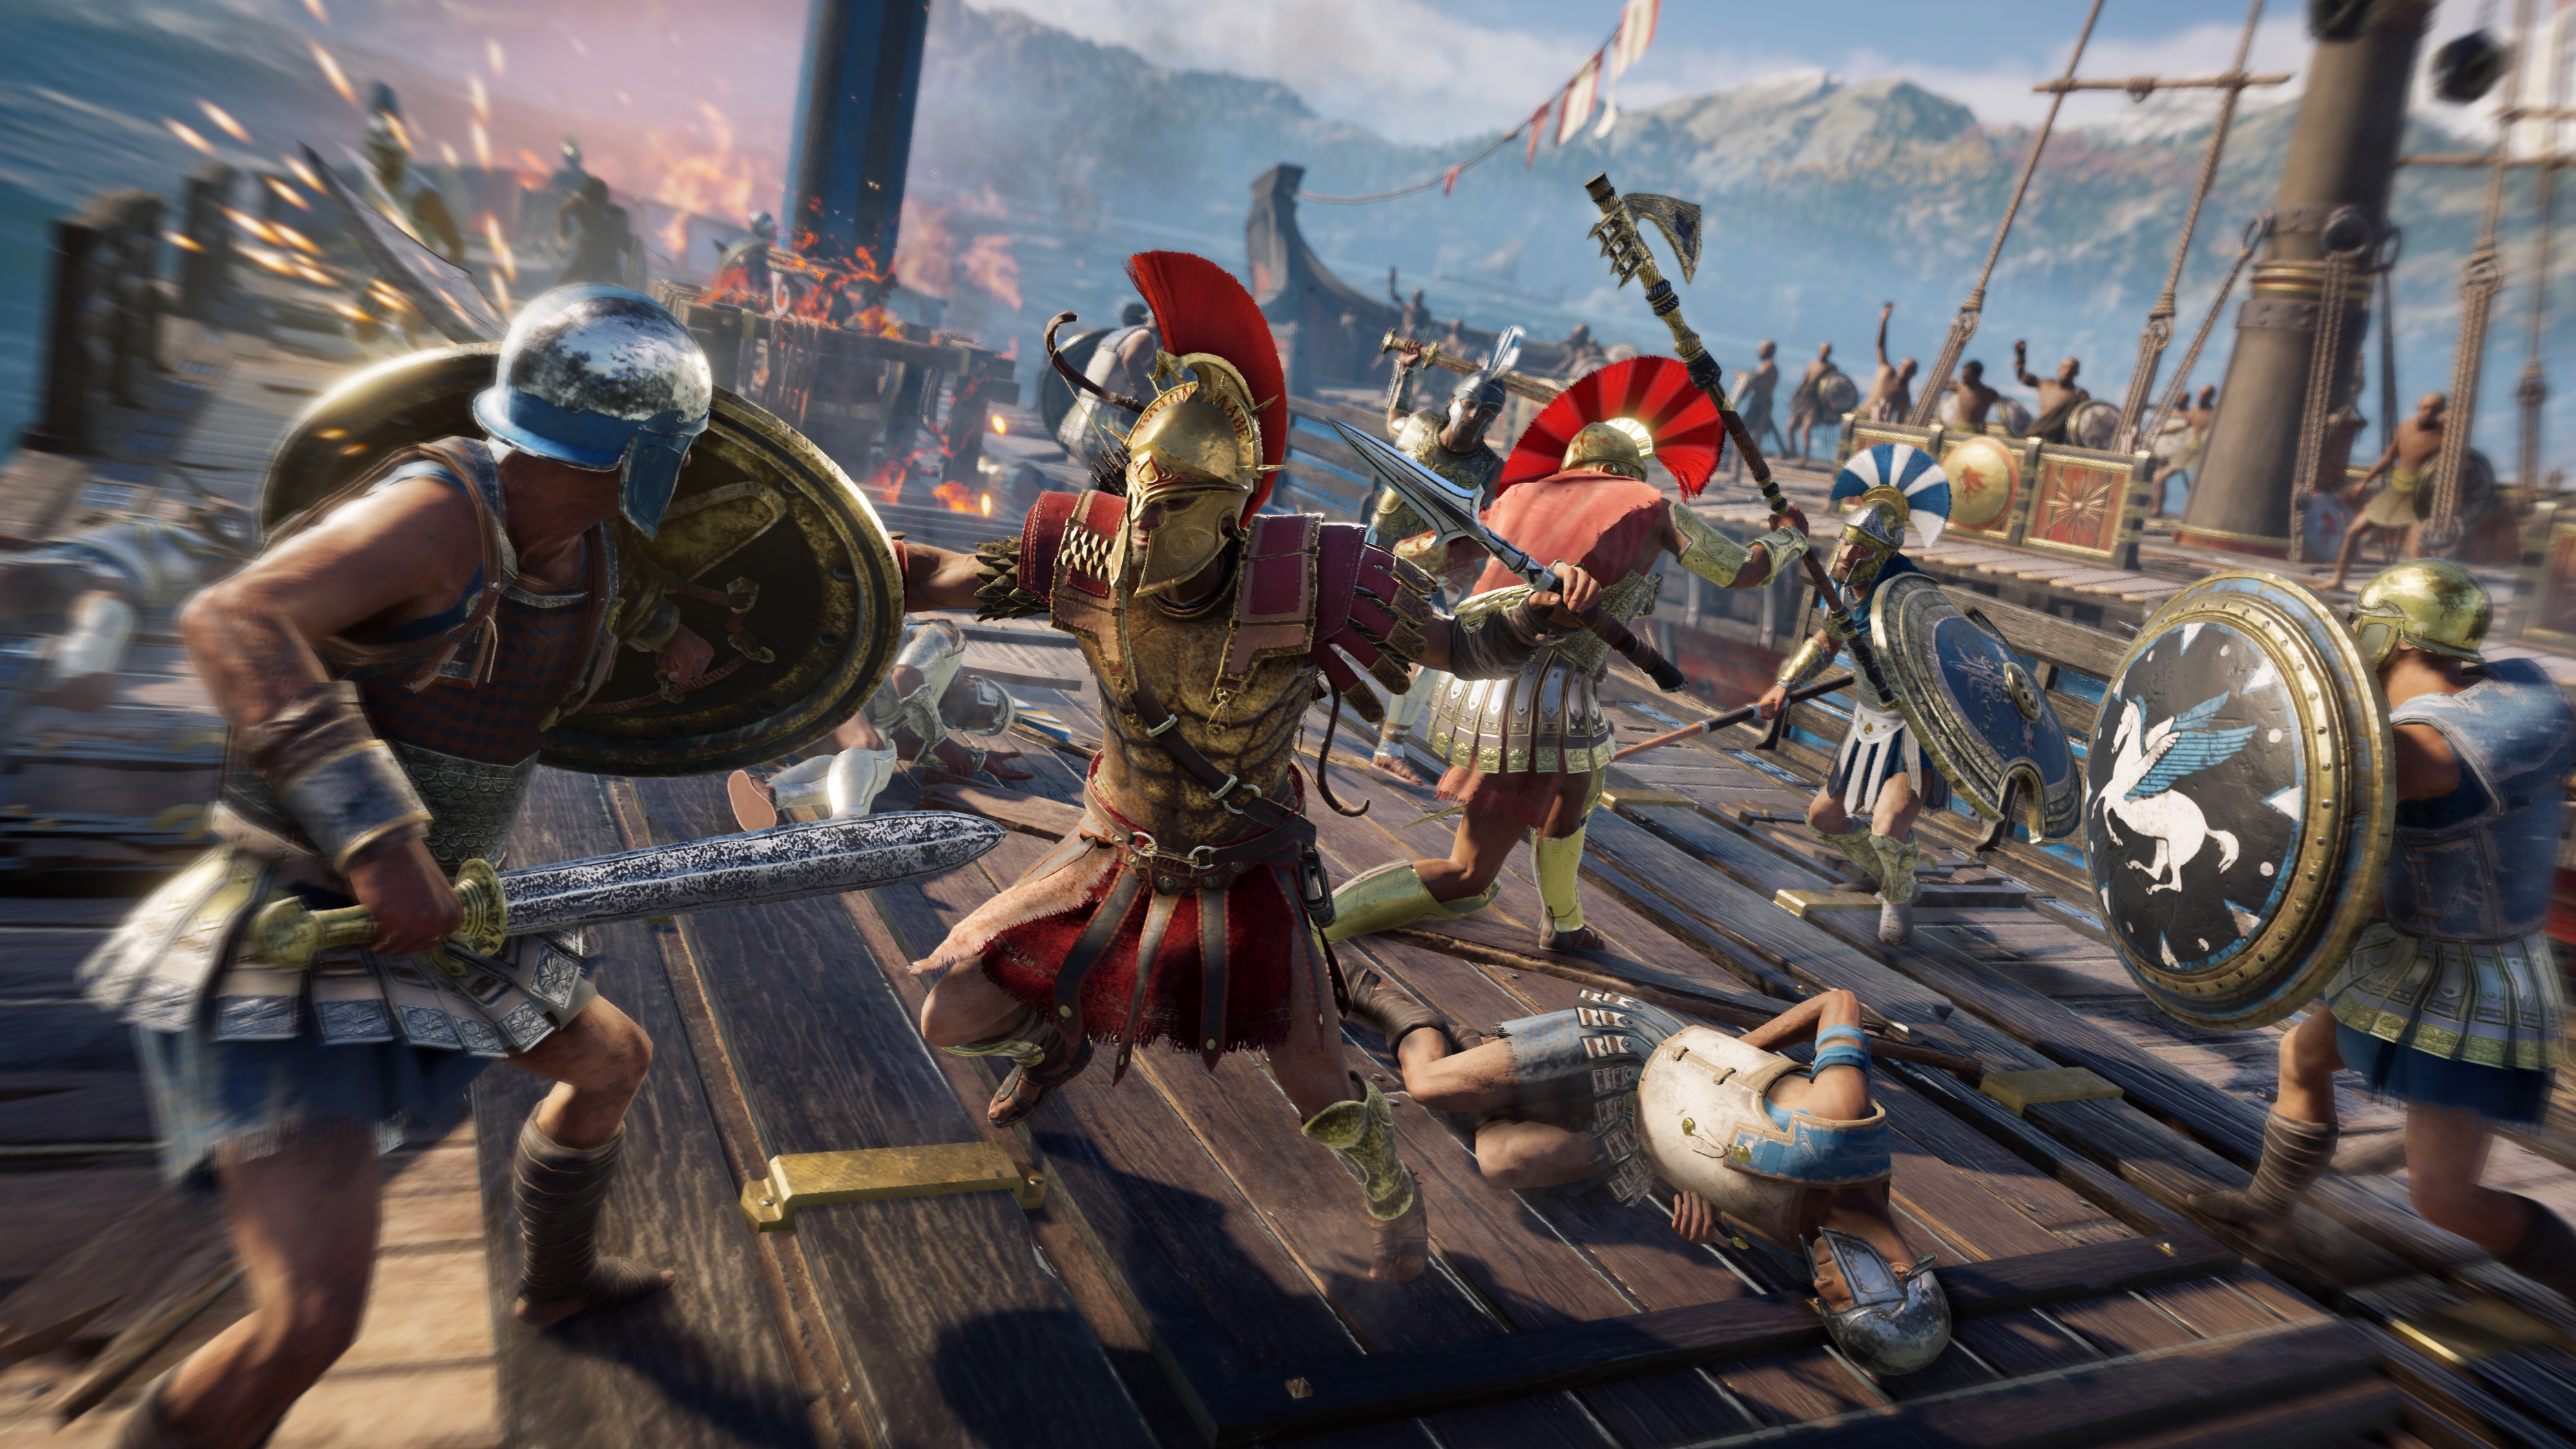 Best single player PC games: Assassin's Creed: Odyssey